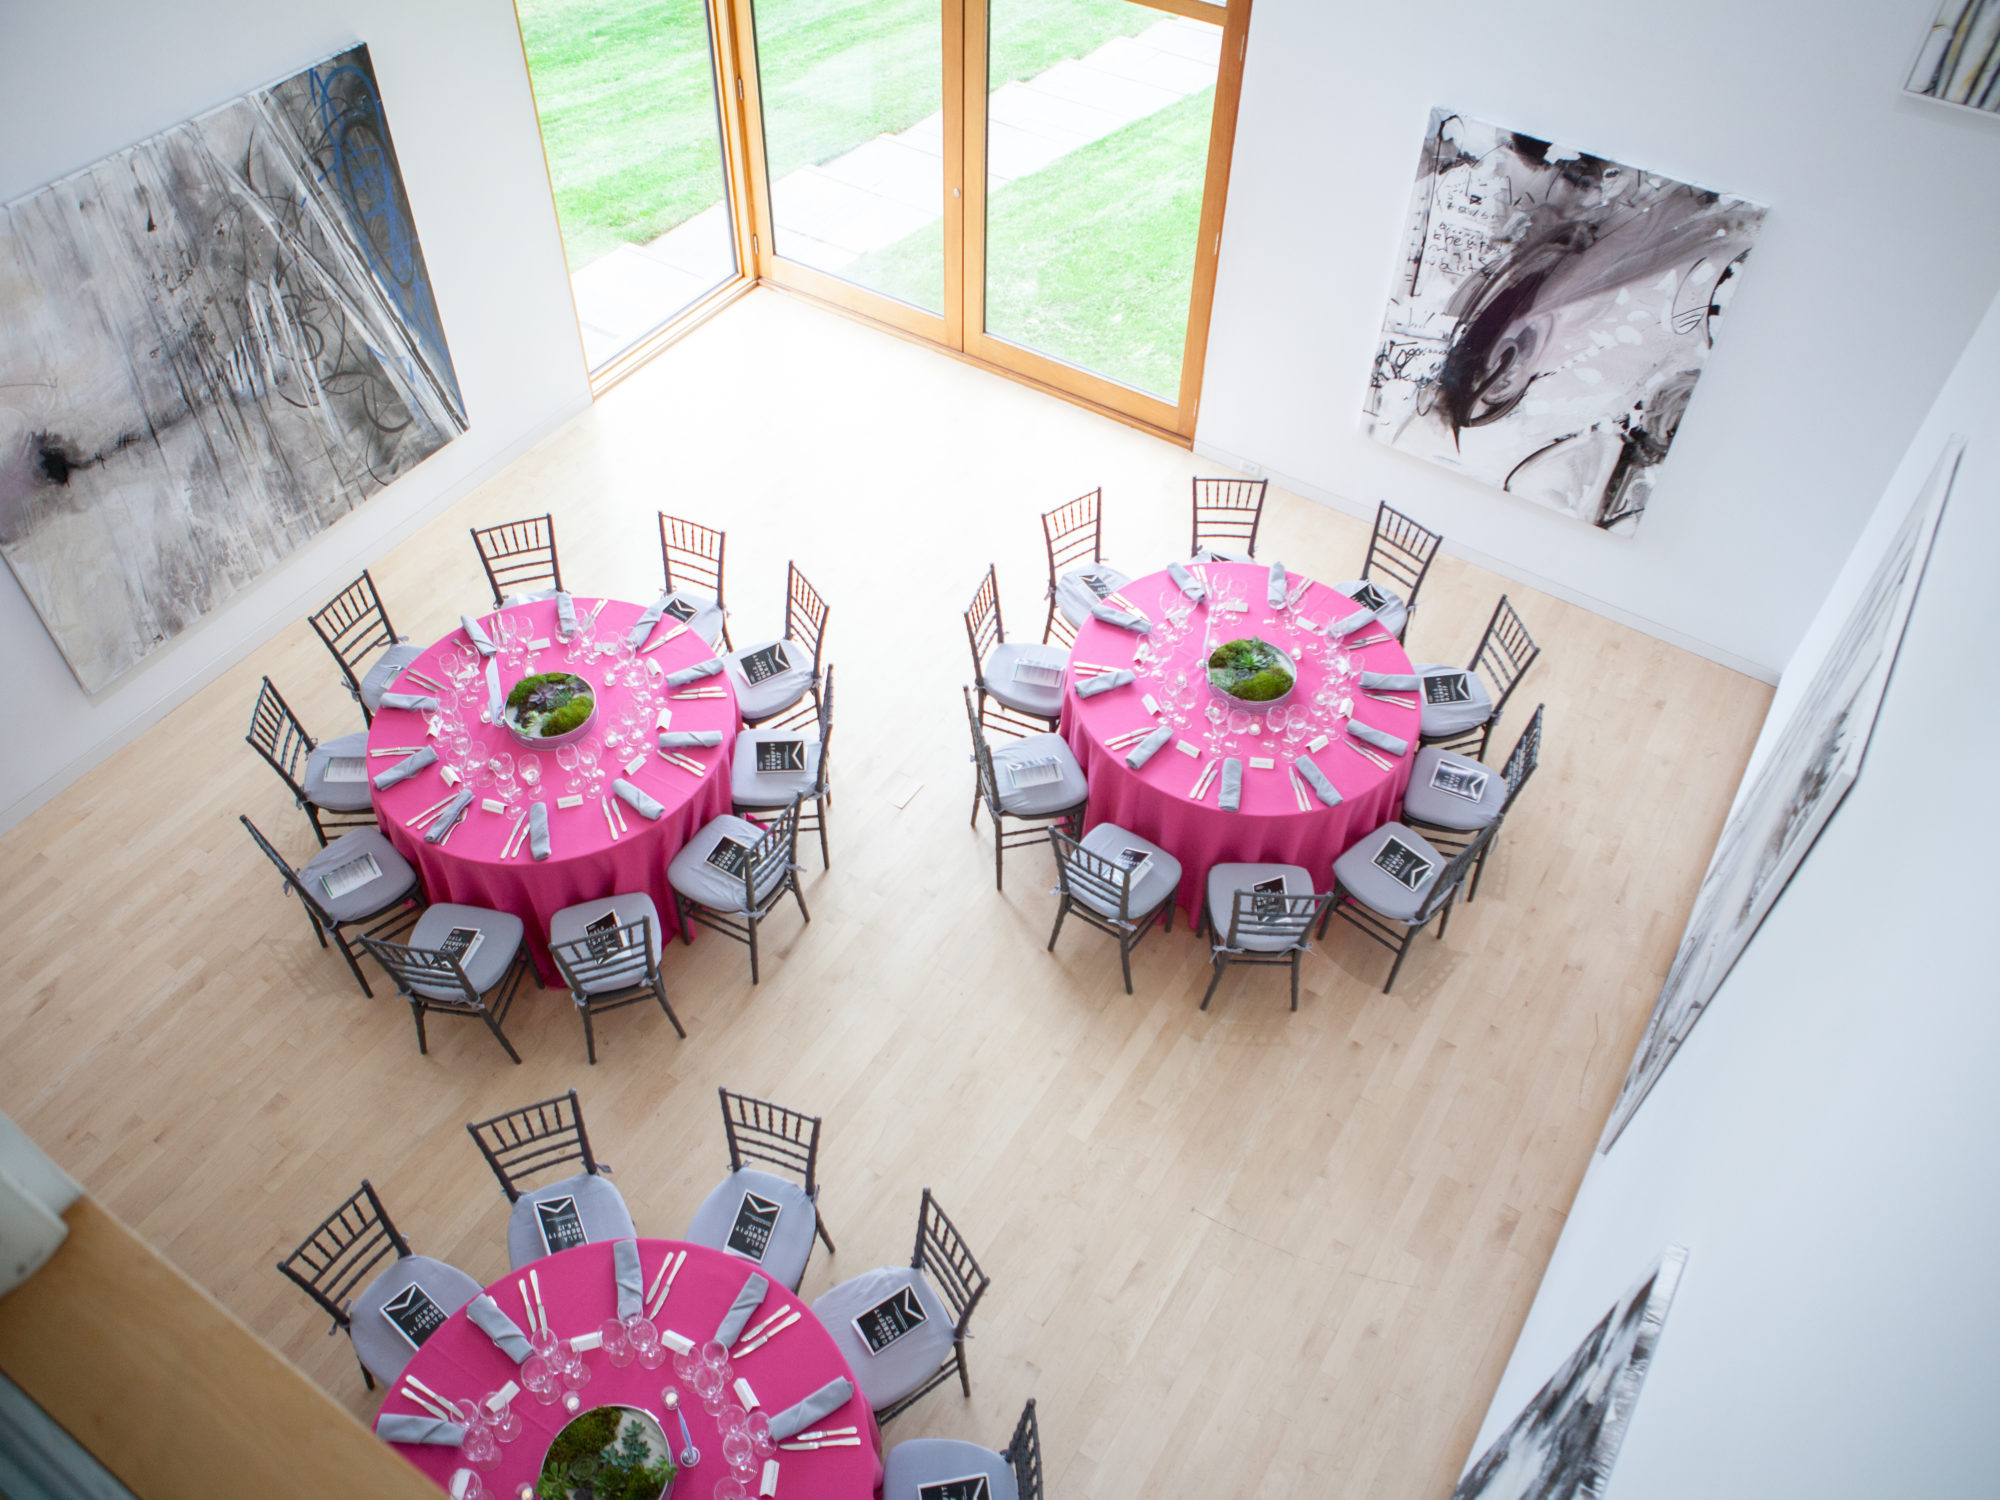 Image of three tables with pink tablecloths in a gallery set up for an event.